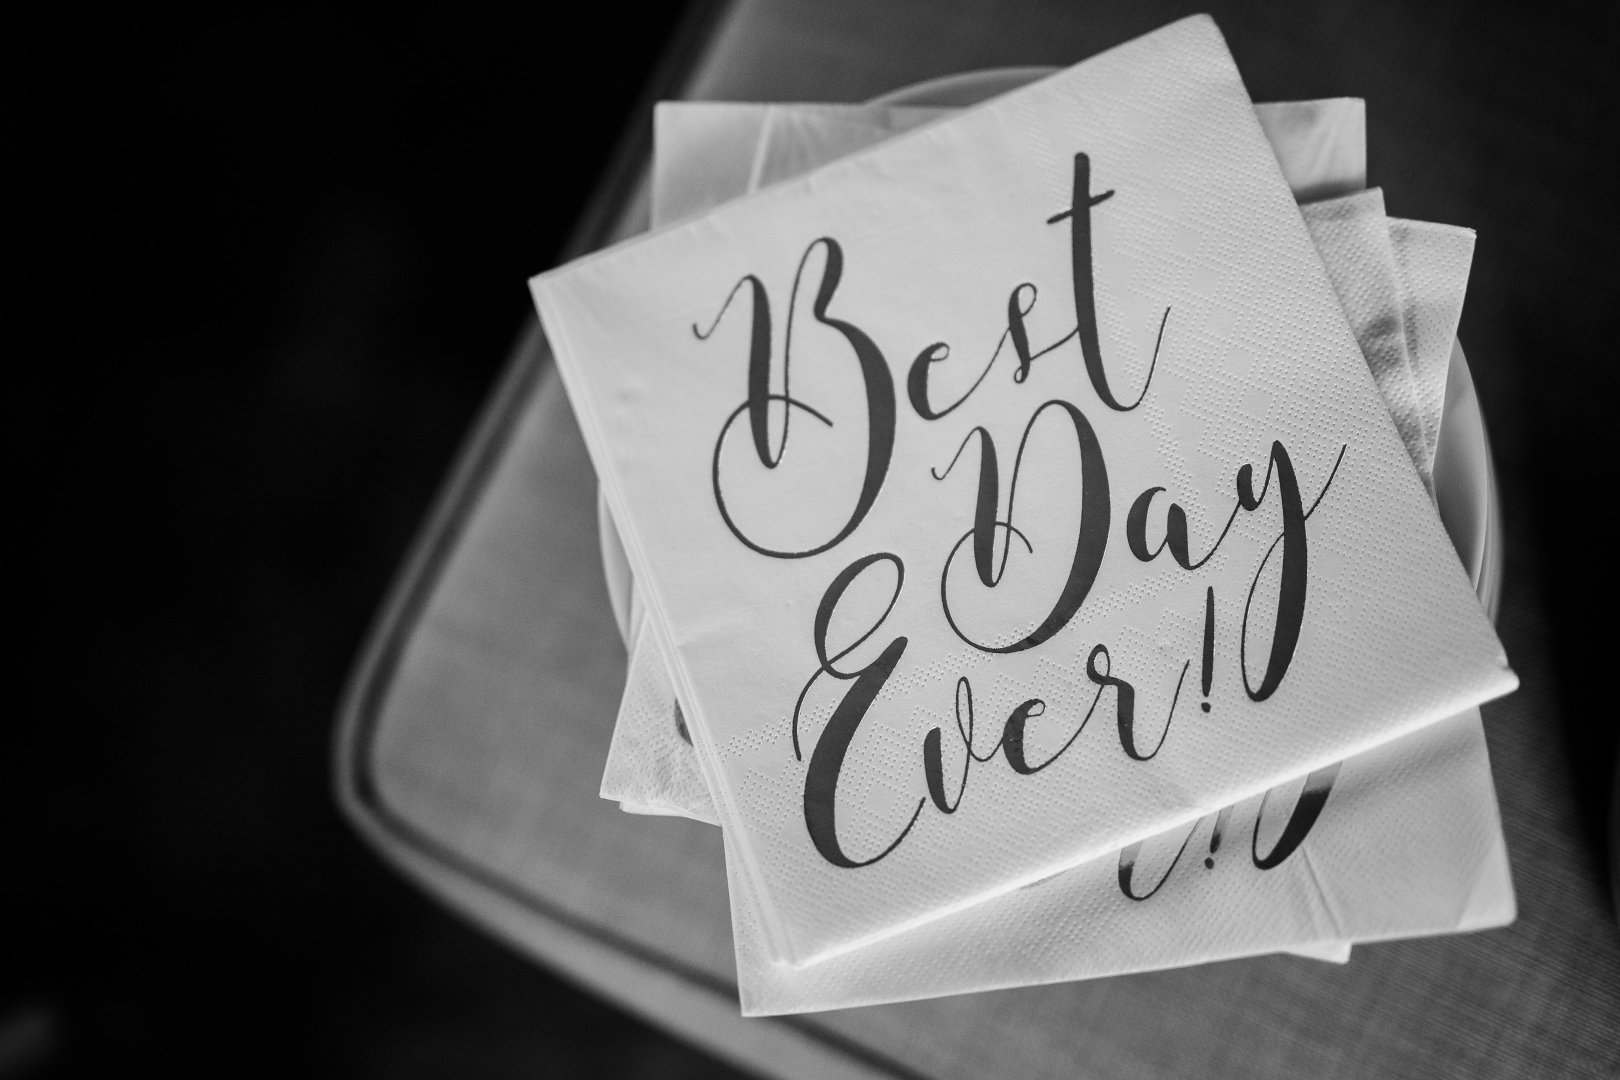 White Black Font Black-and-white Text Calligraphy Monochrome photography Handwriting Monochrome Art Photography Style Smile